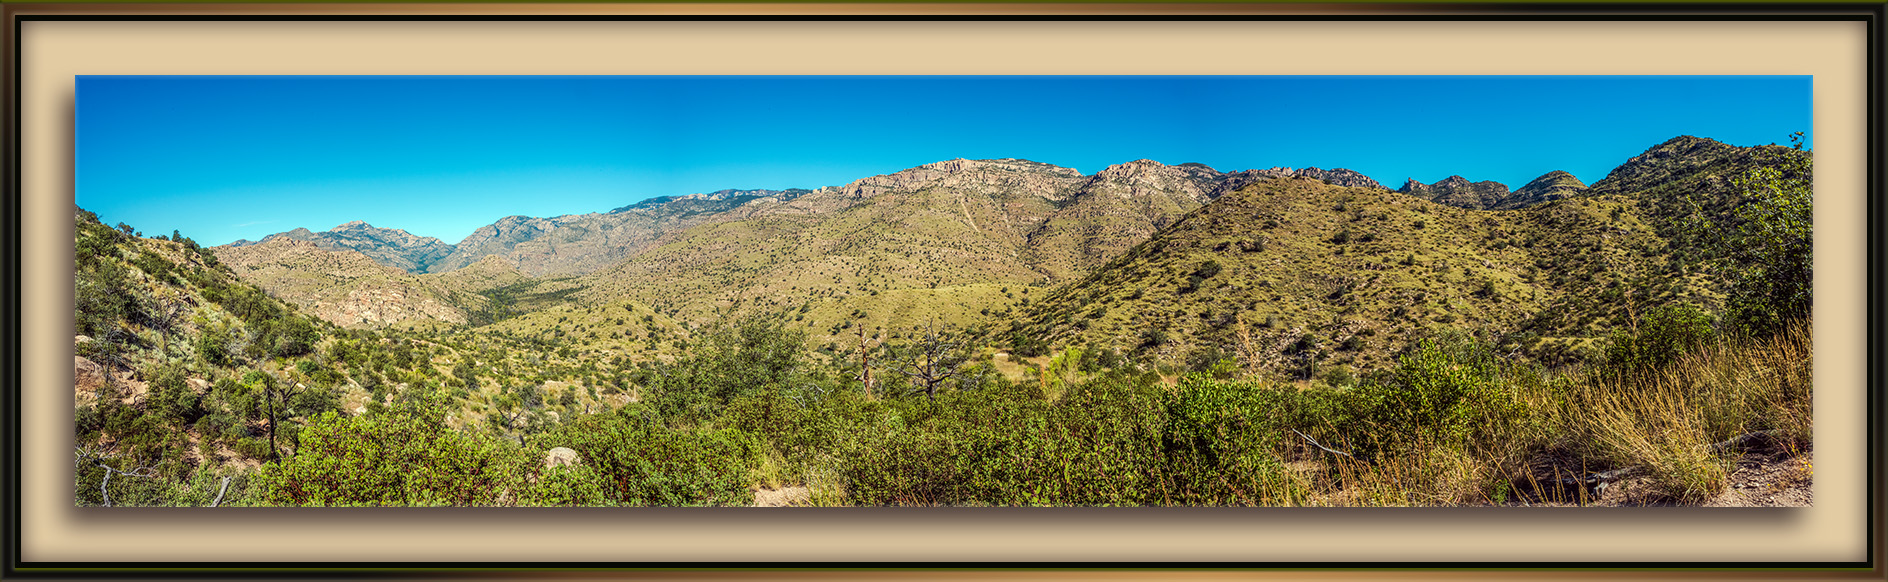 sycamore-canyon-on-the-arizona-trail-1-of-1-panorama-blog